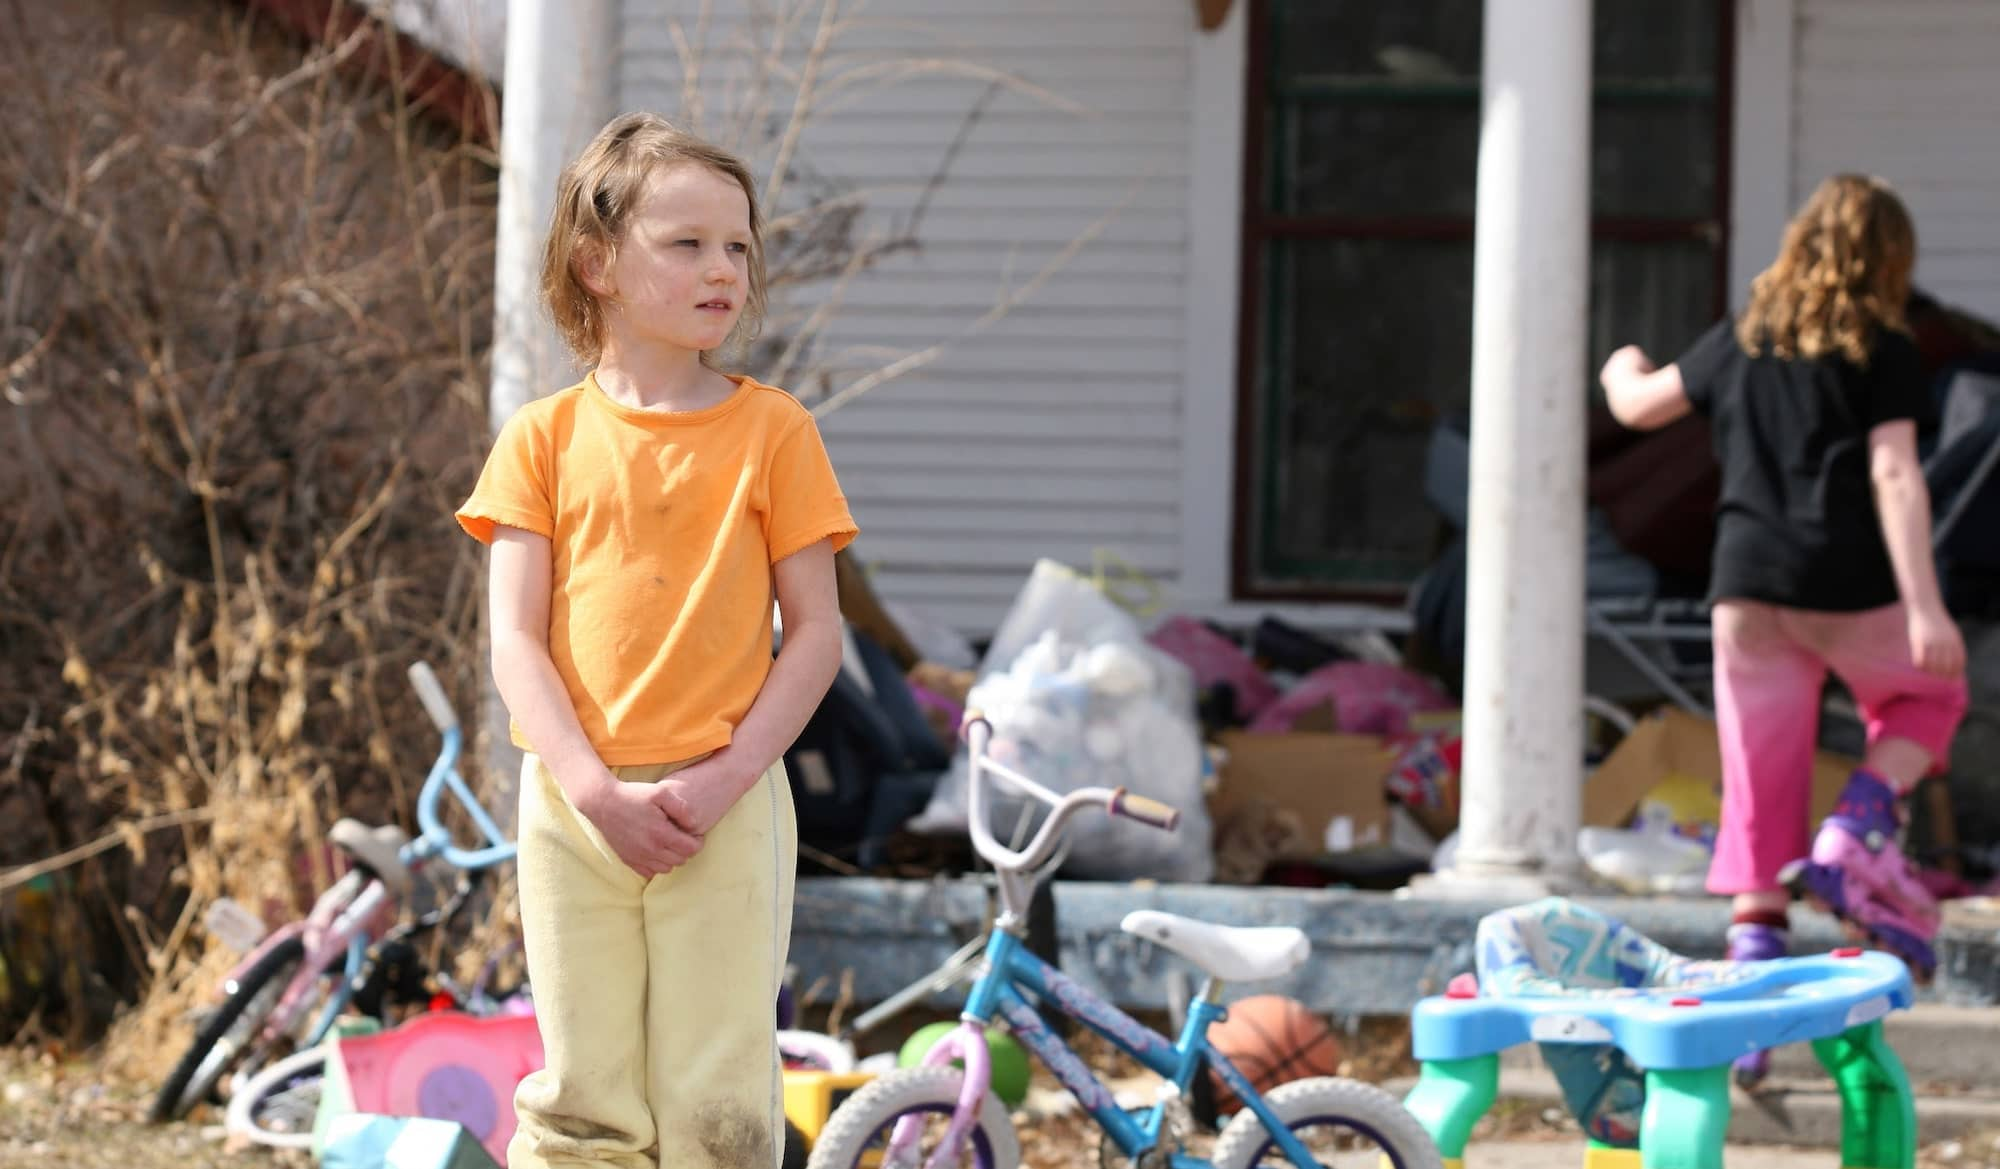 A child in poverty stands in front of a foreclosed home as her sister walks through their belongings outside.